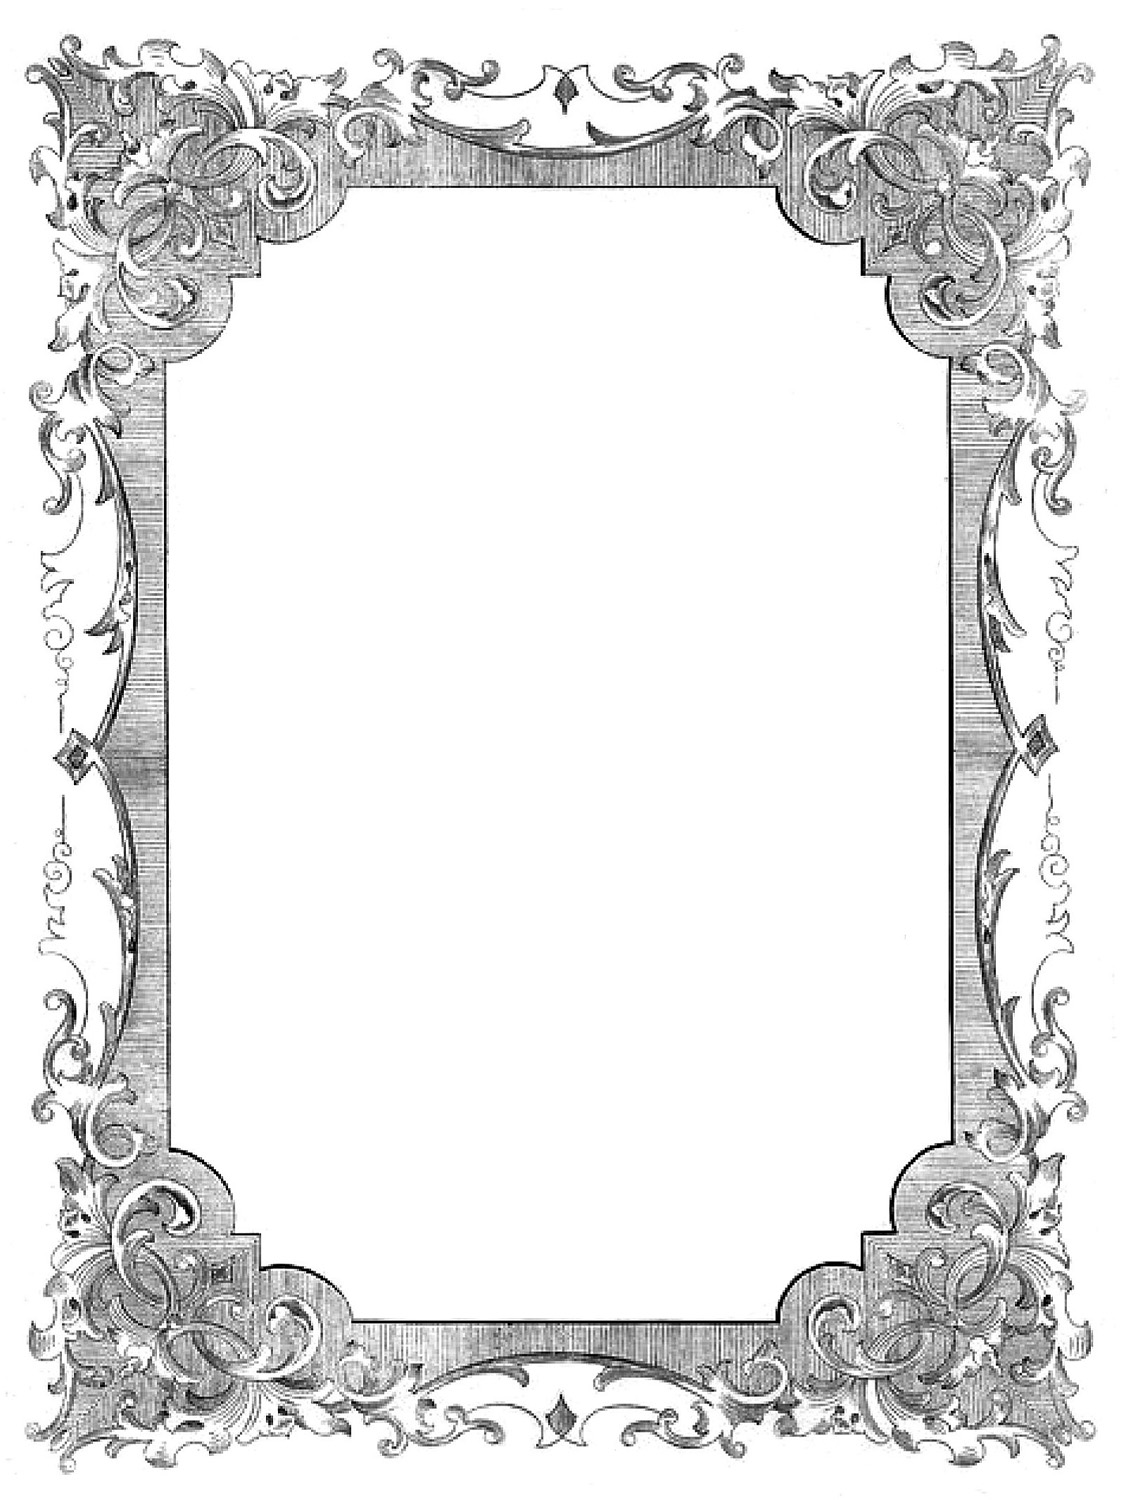 84d9313ad3d 23 Frame Clipart - Fancy and Ornate - The Graphics Fairy